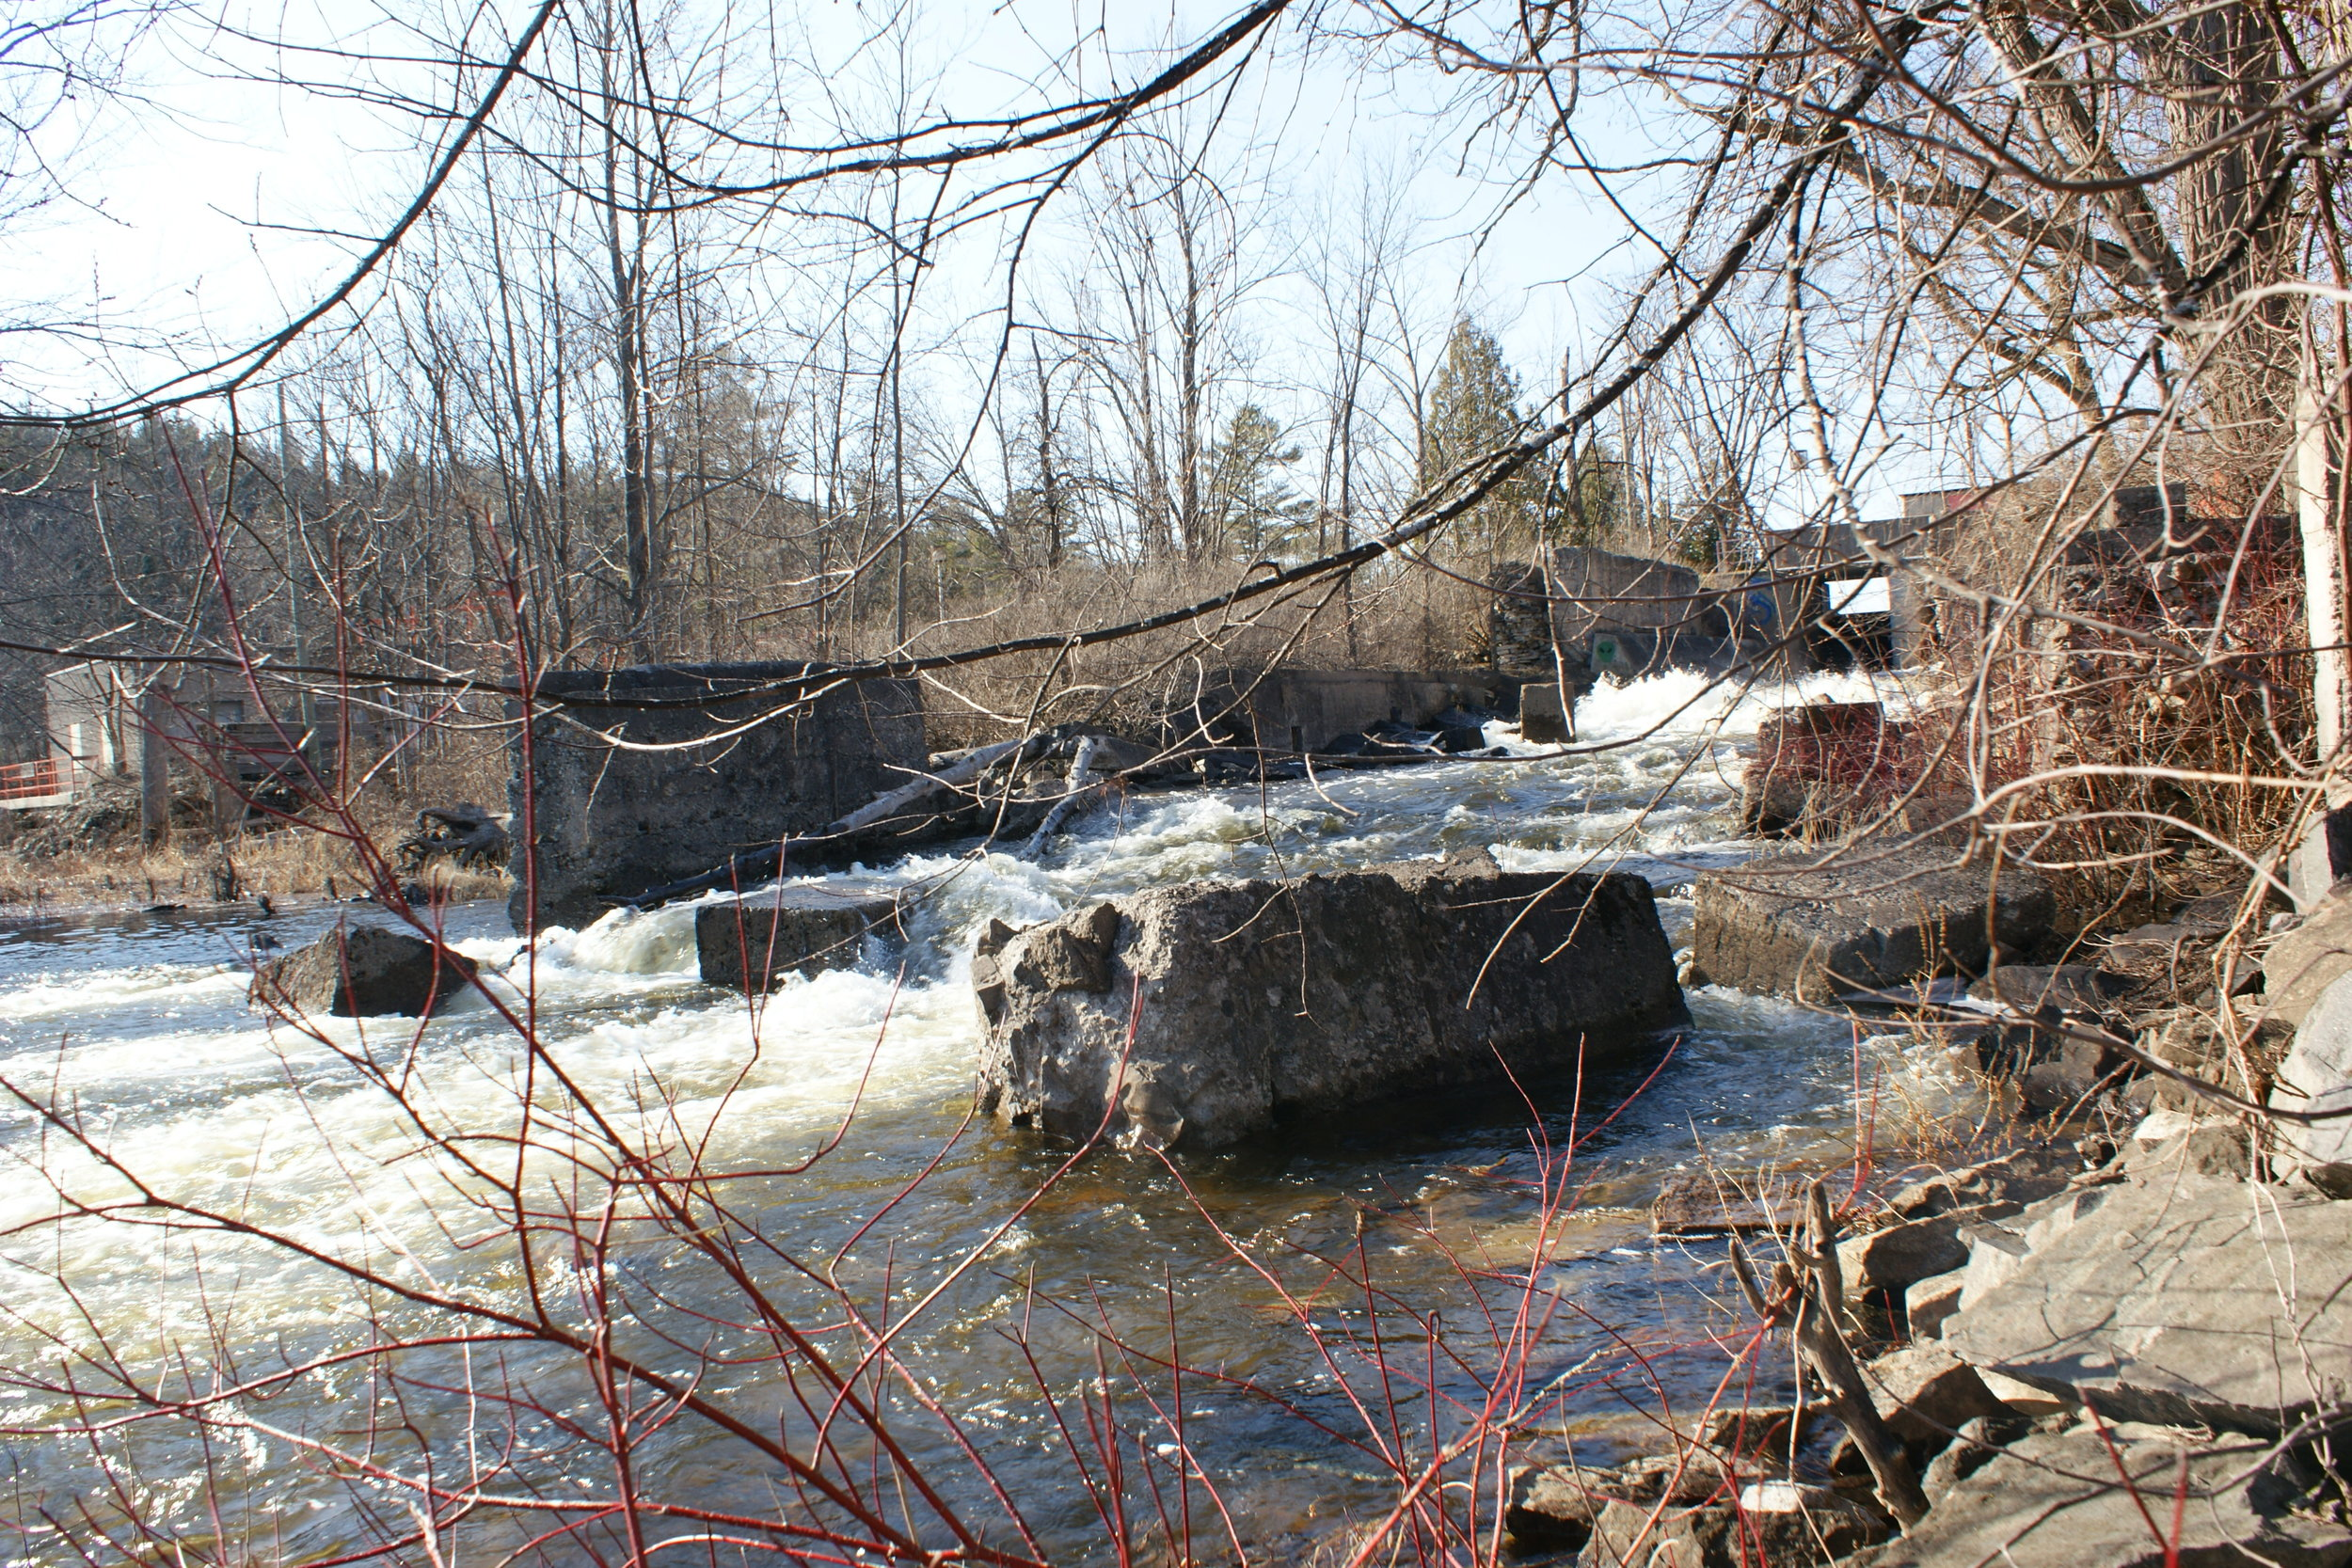 Water chute for sawmill